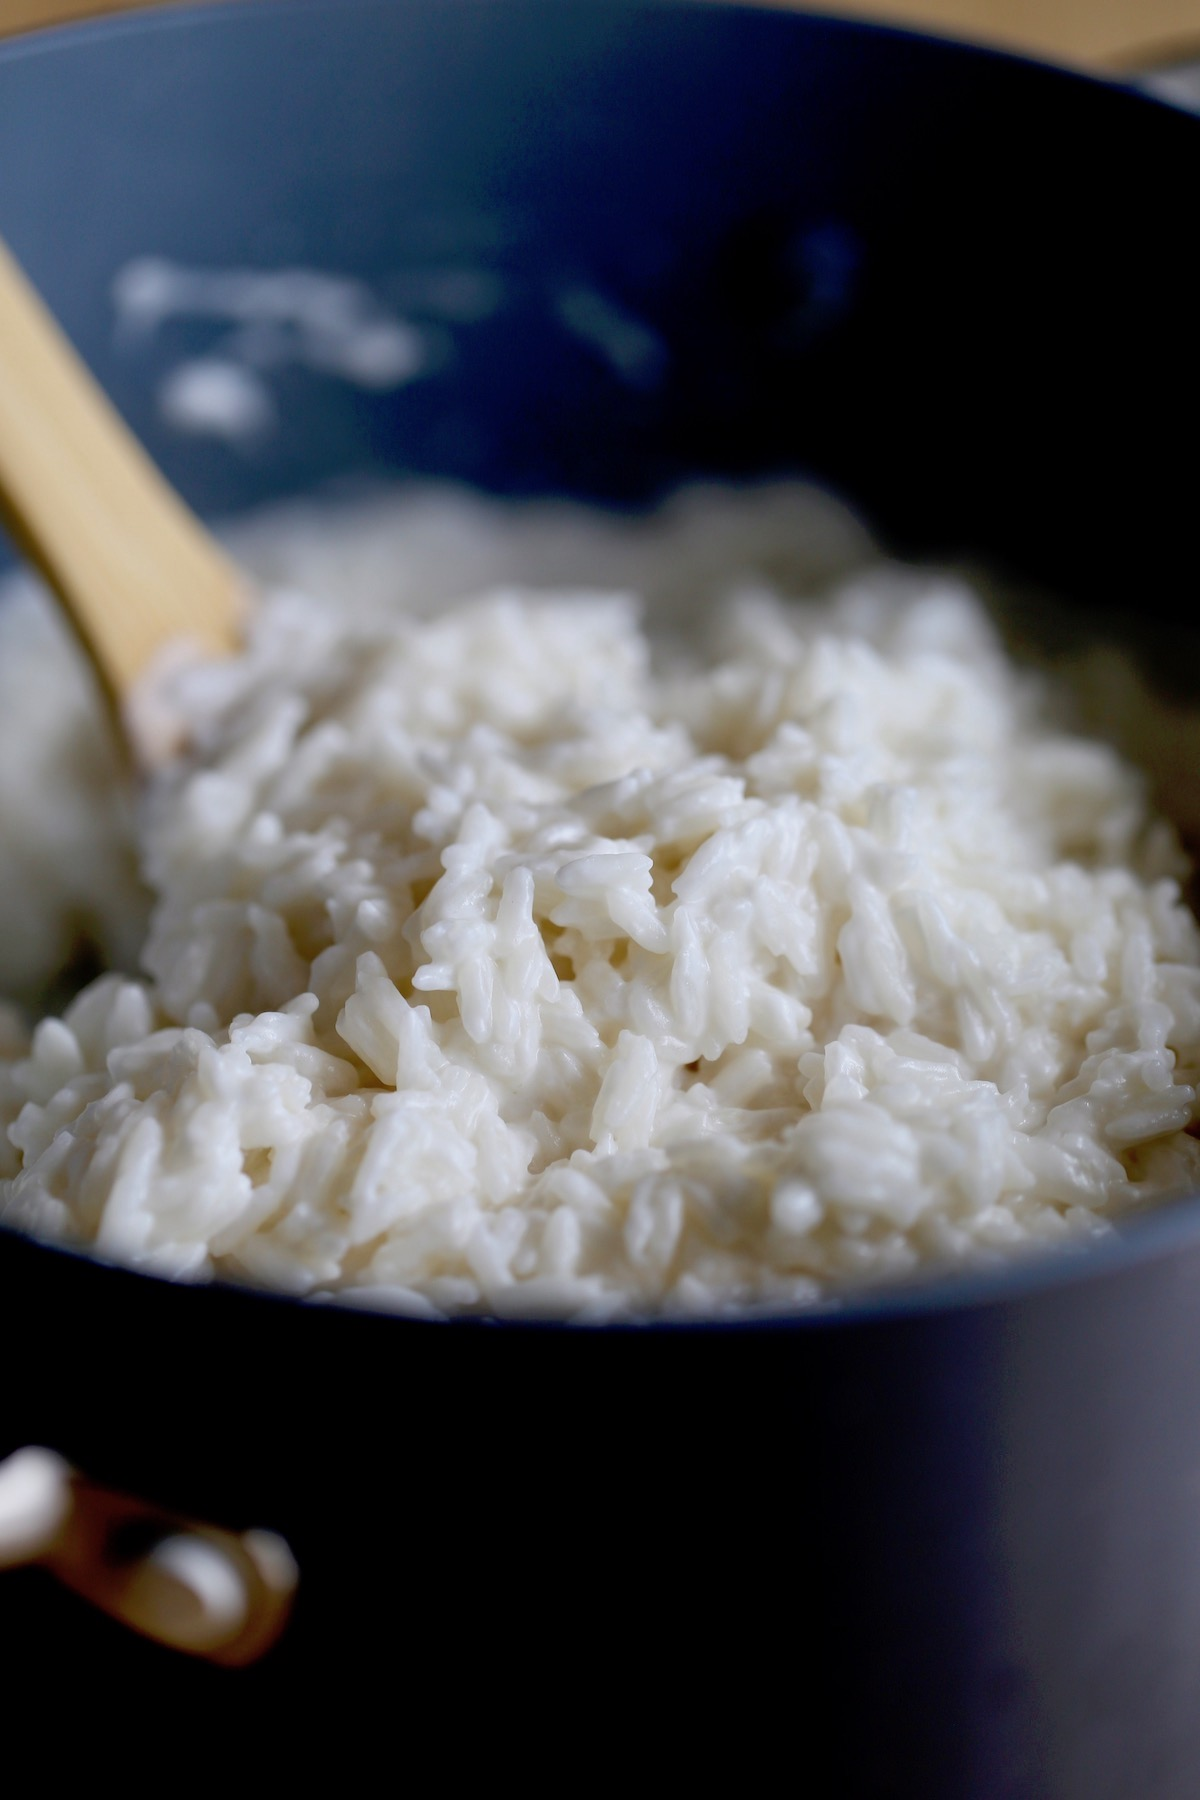 coconut rice being scooped up from a pot with a wooden spoon